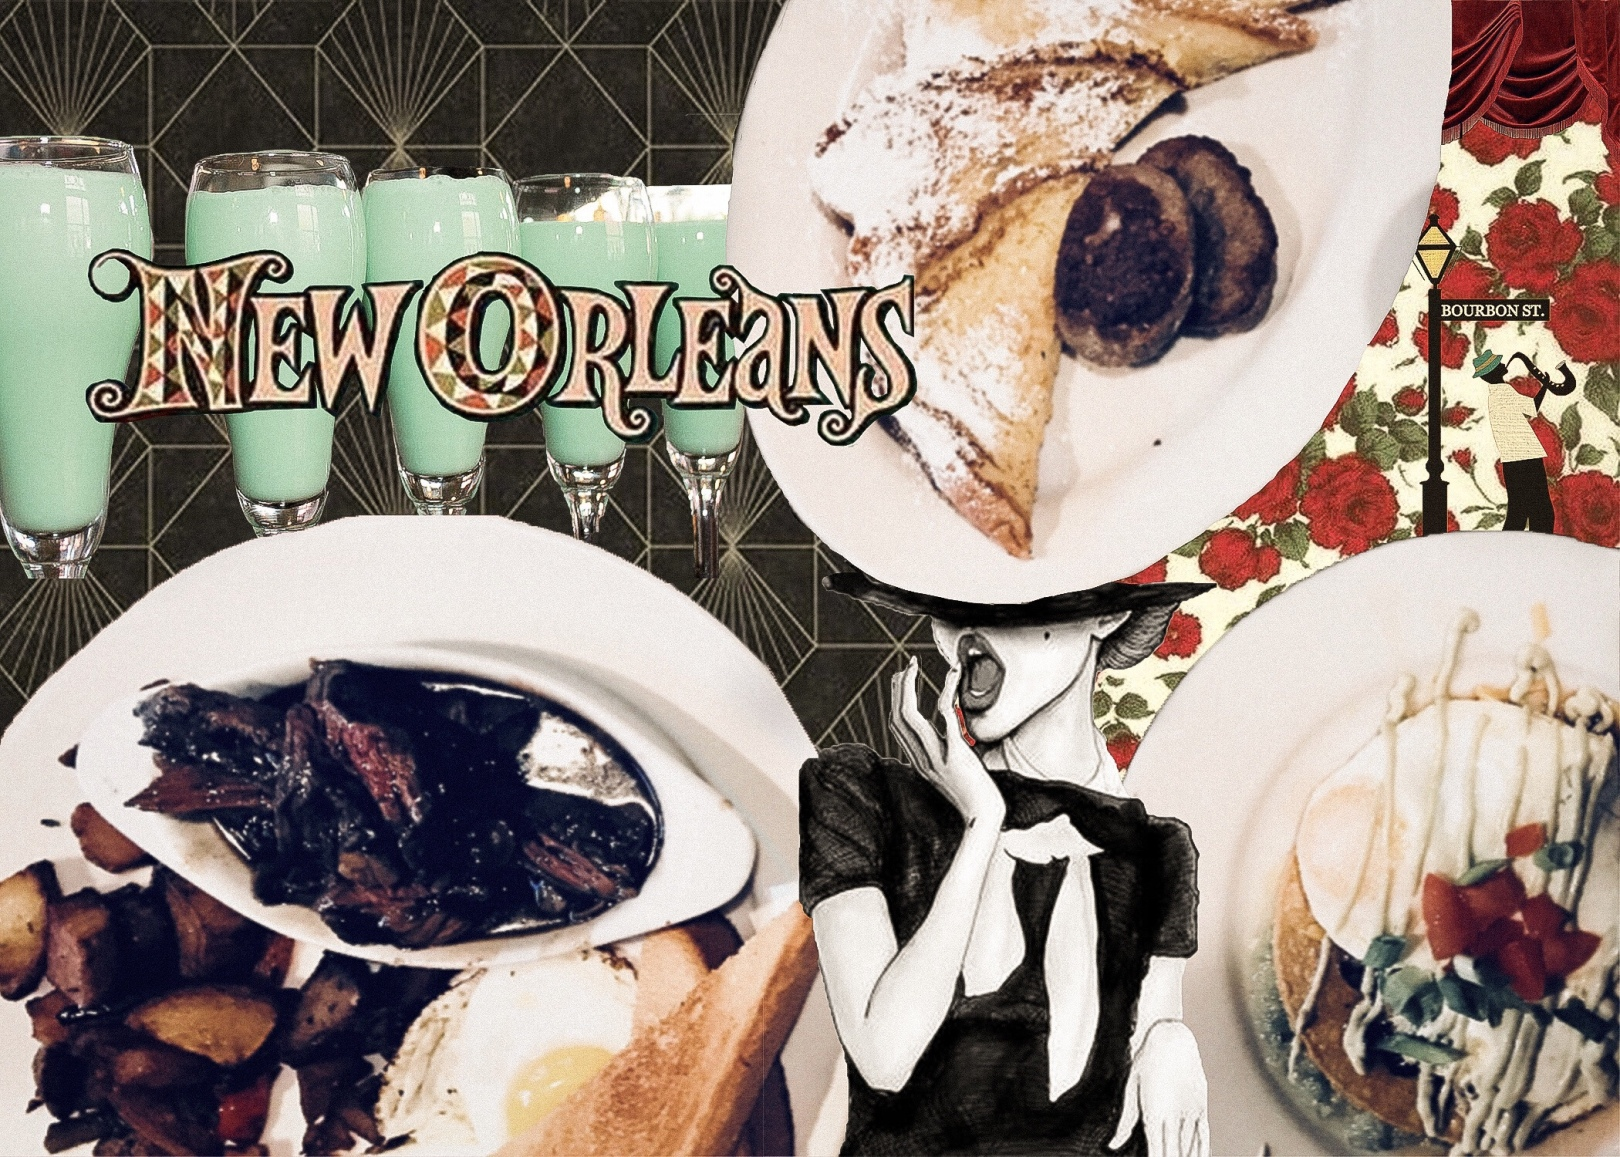 Jessica Teran Creole food tour New Orleans Louisiana eat travel guide